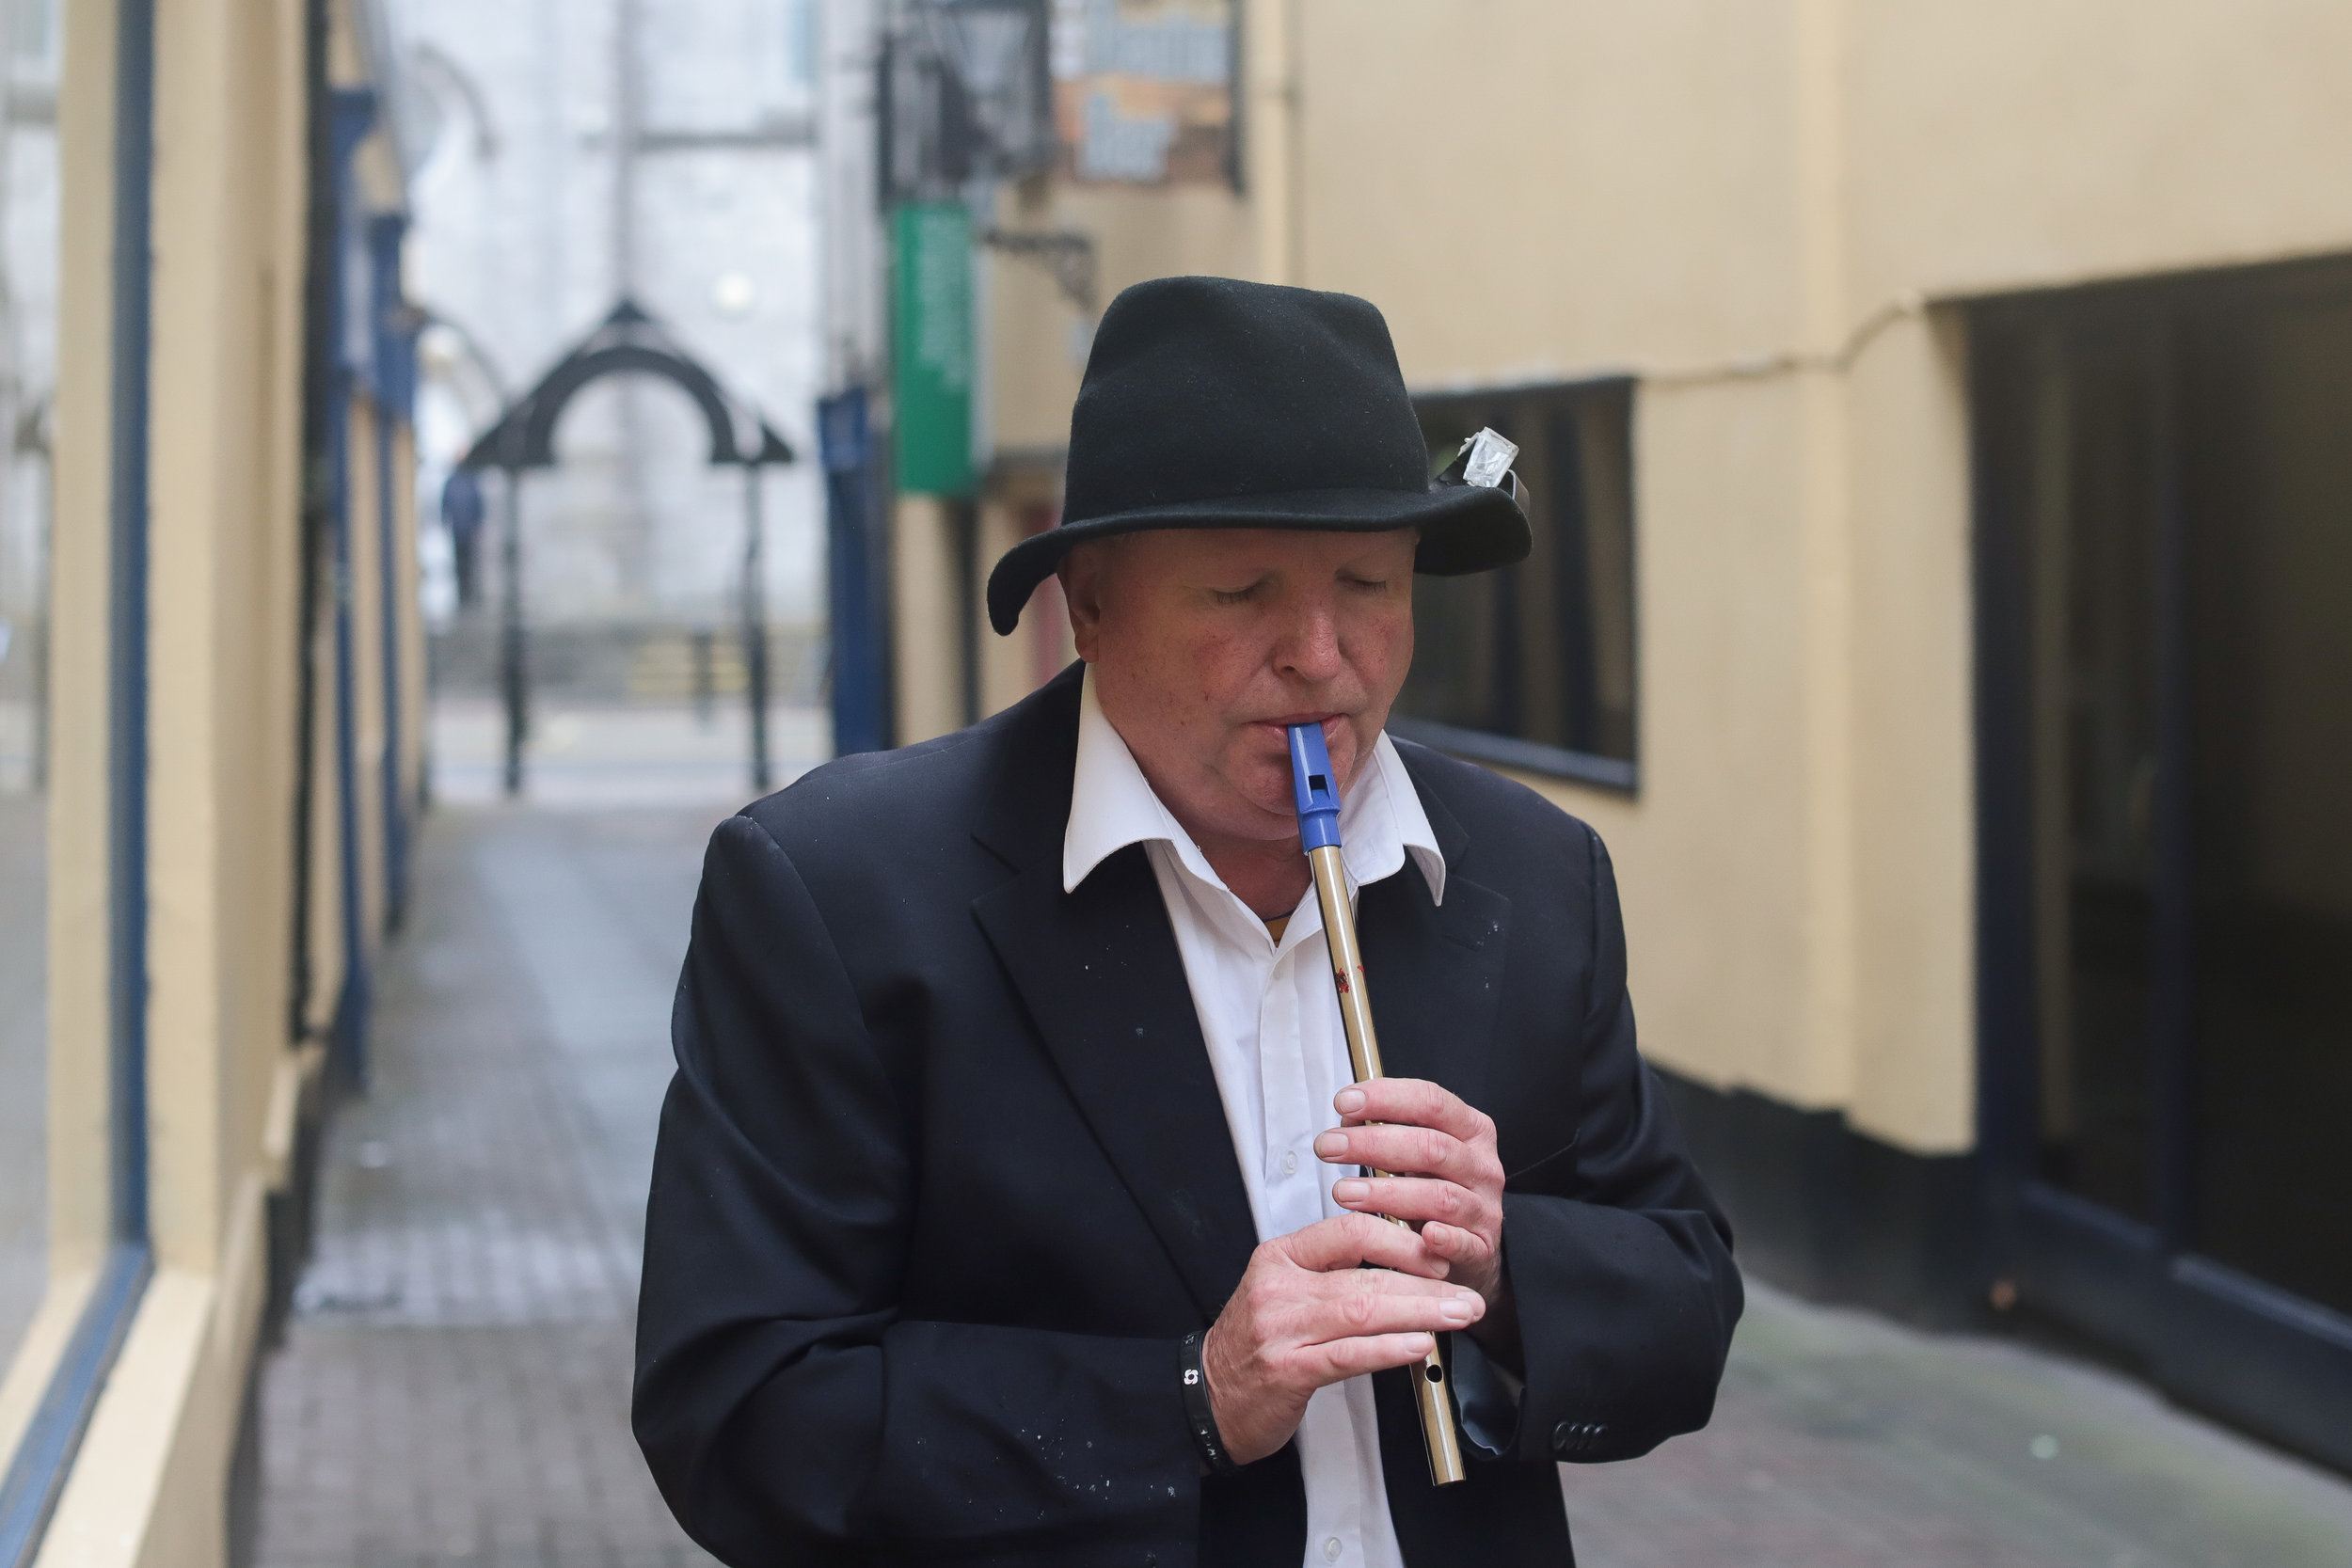 Peter the flute player